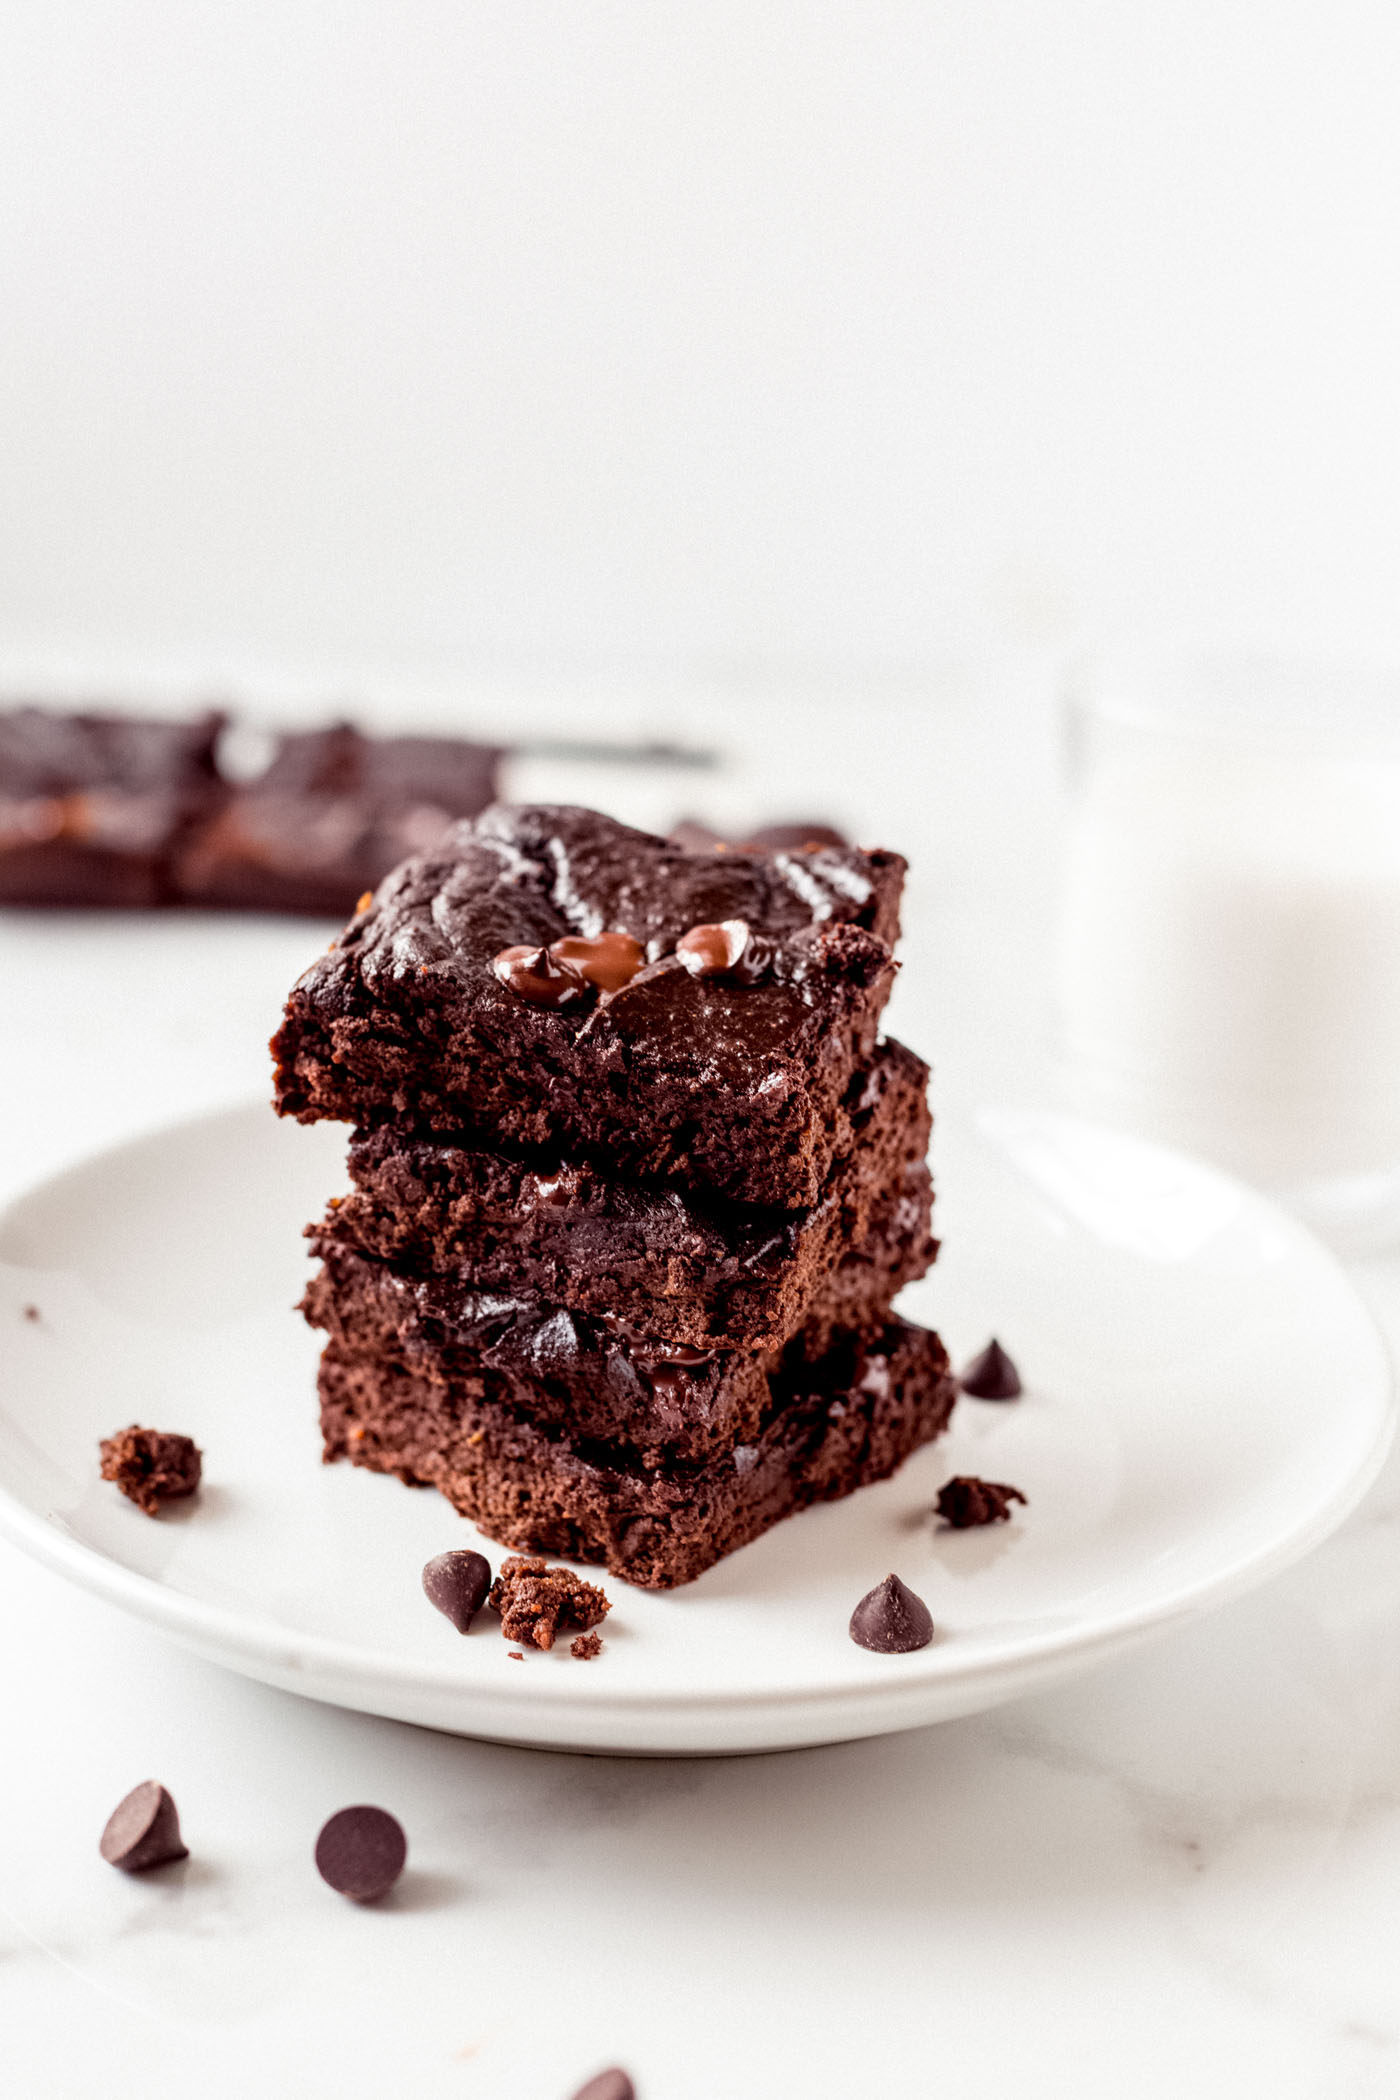 brownies stacked on a white plate with glass of milk and brownies behind on white background